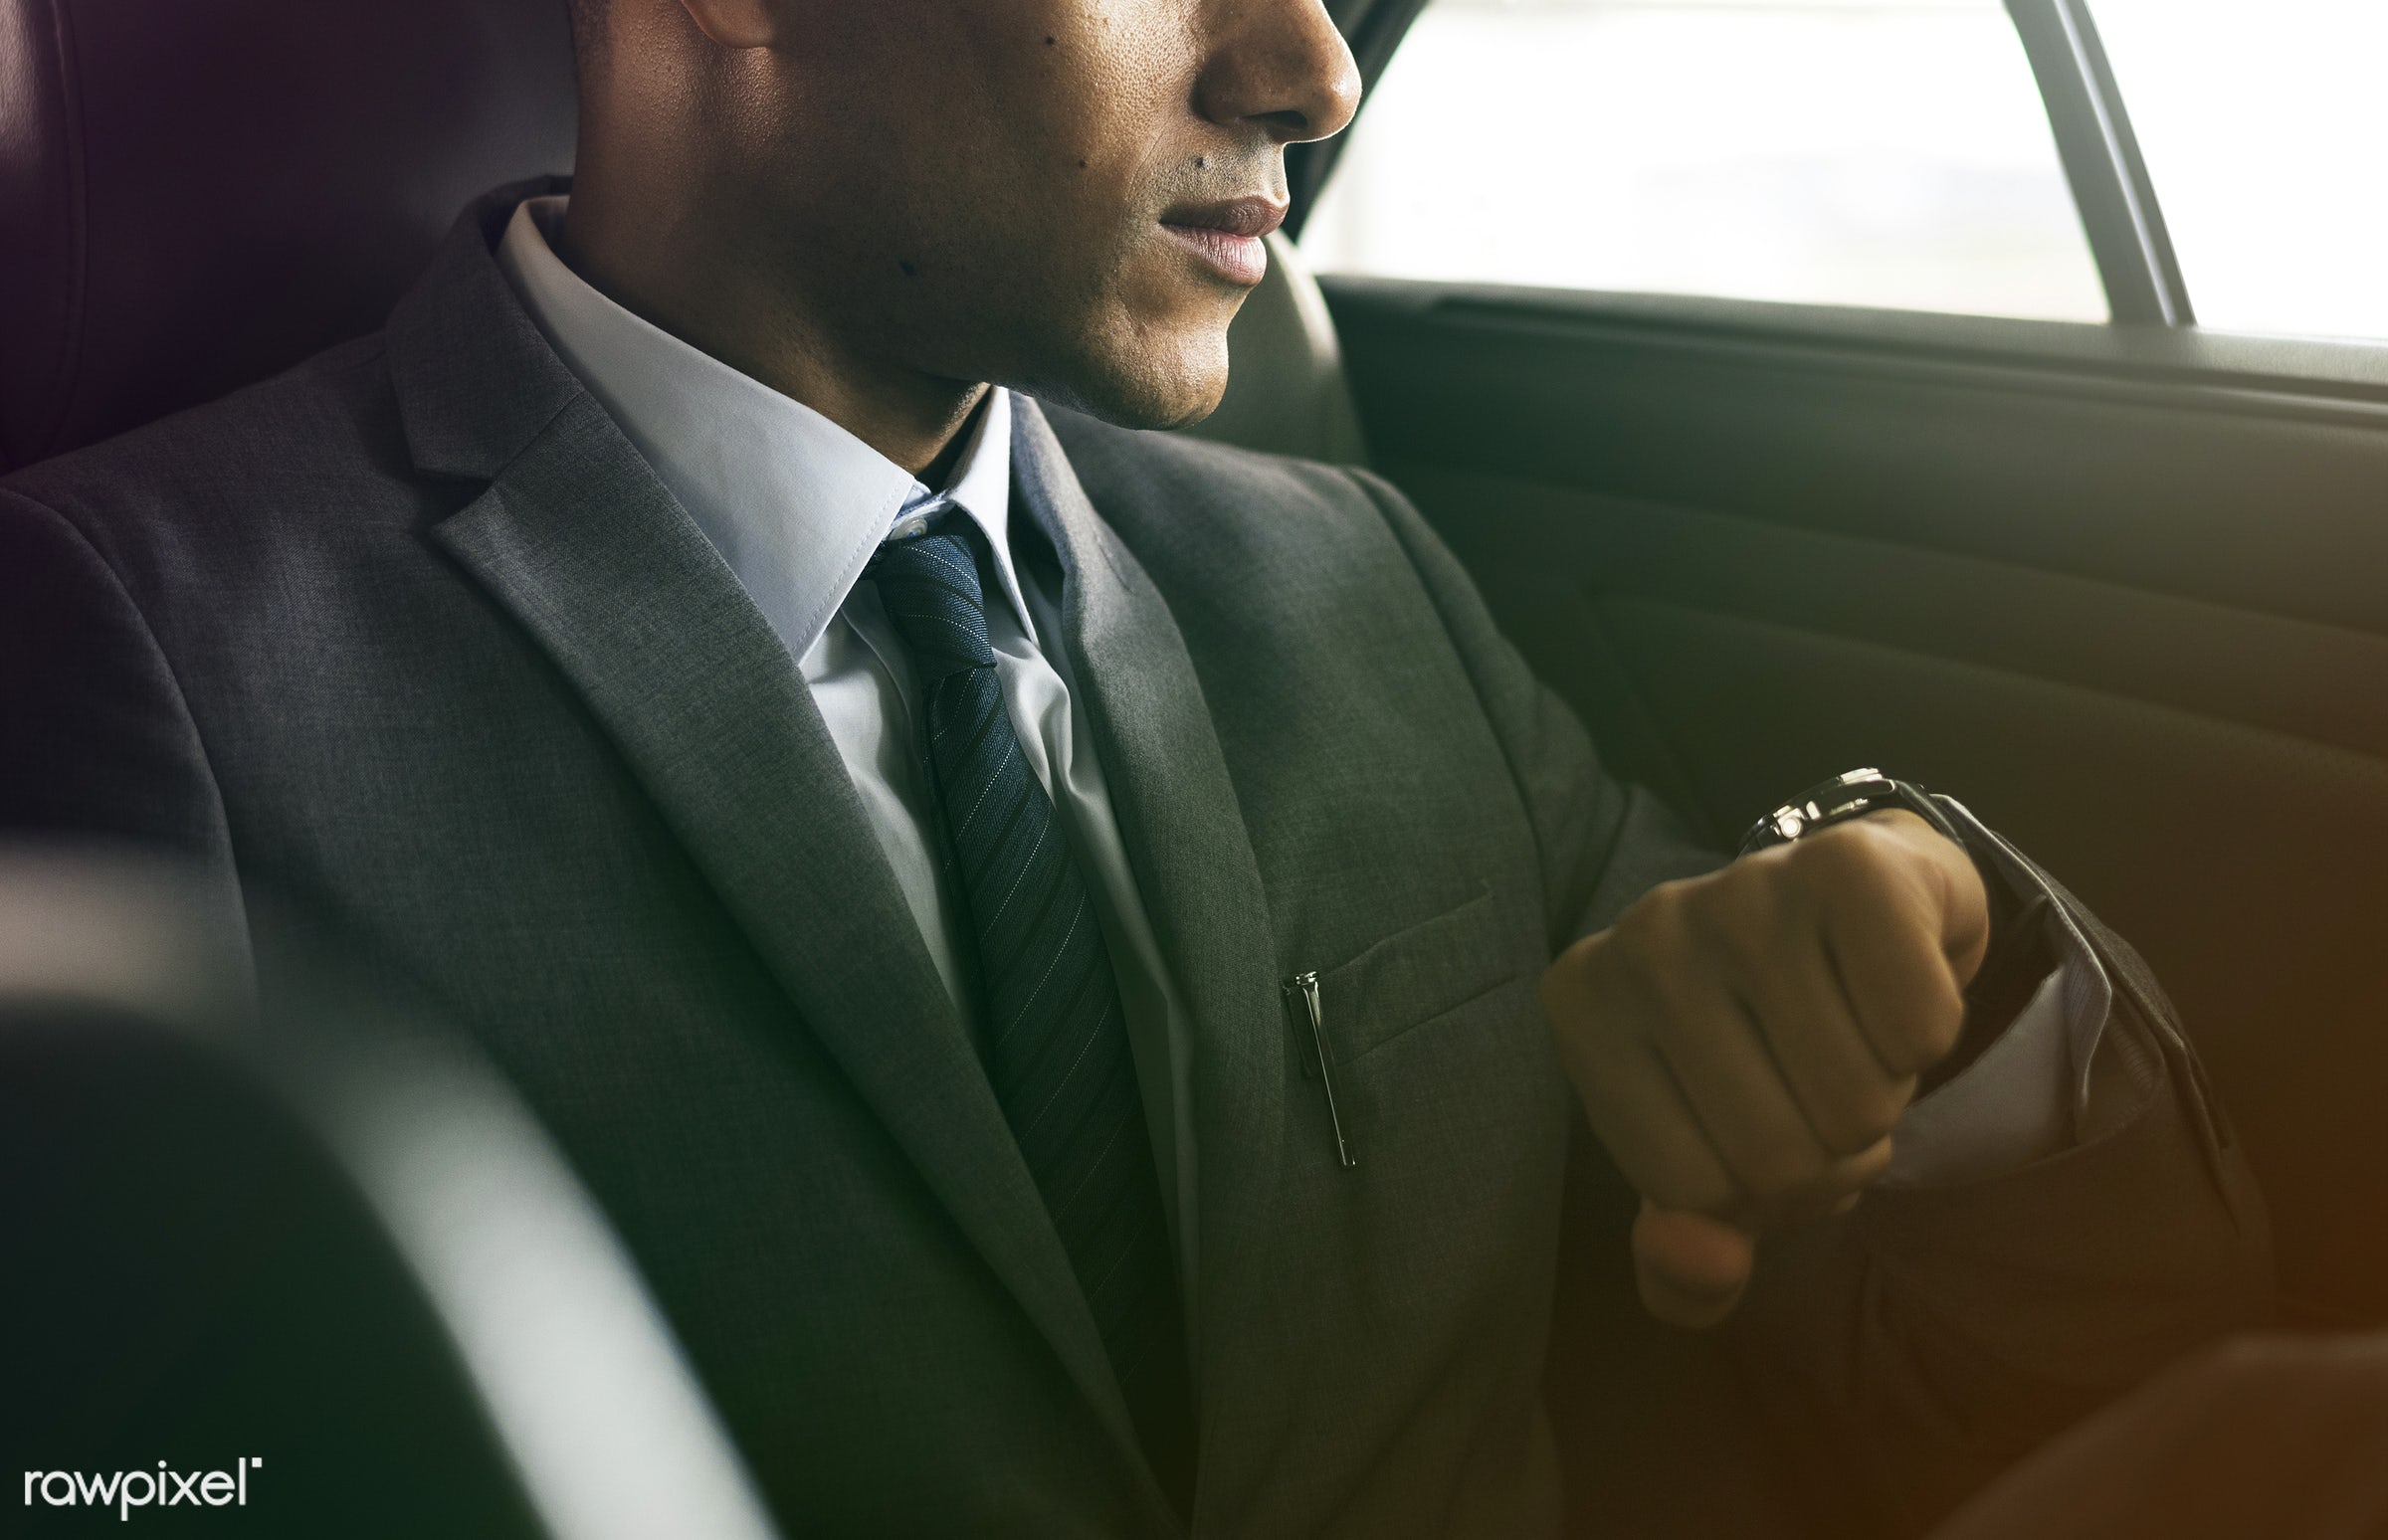 car, expression, person, suit and tie, white collar worker, tie, vehicle, travel, transportation, business, businessman,...